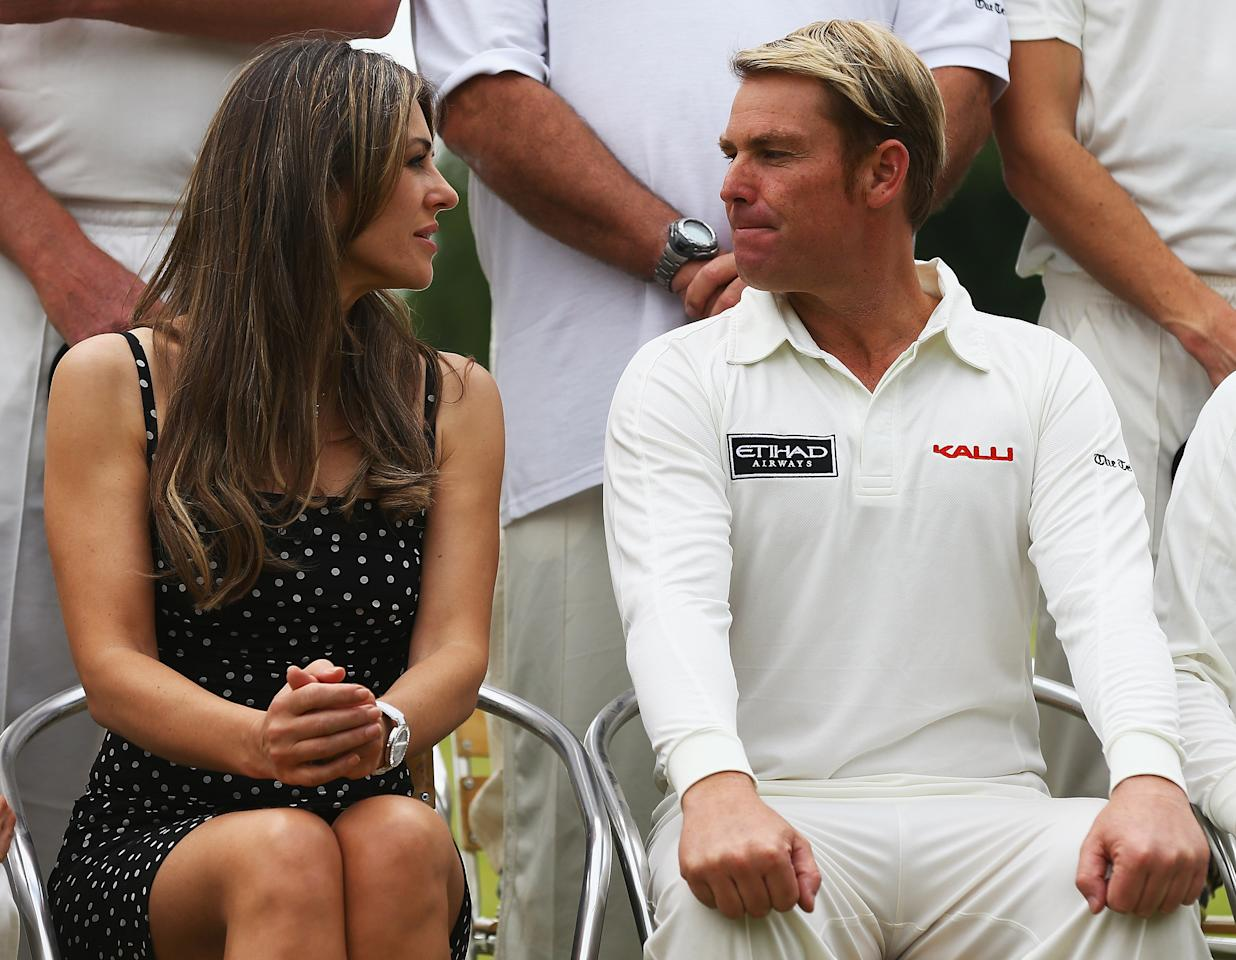 CIRENCESTER, ENGLAND - JUNE 09:  Elizabeth Hurley and Shane Warne look on during the Shane Warne's Australia vs Michael Vaughan's England T20 match at Circenster Cricket Club on June 9, 2013 in Cirencester, England.  (Photo by Matthew Lewis/Getty Images)